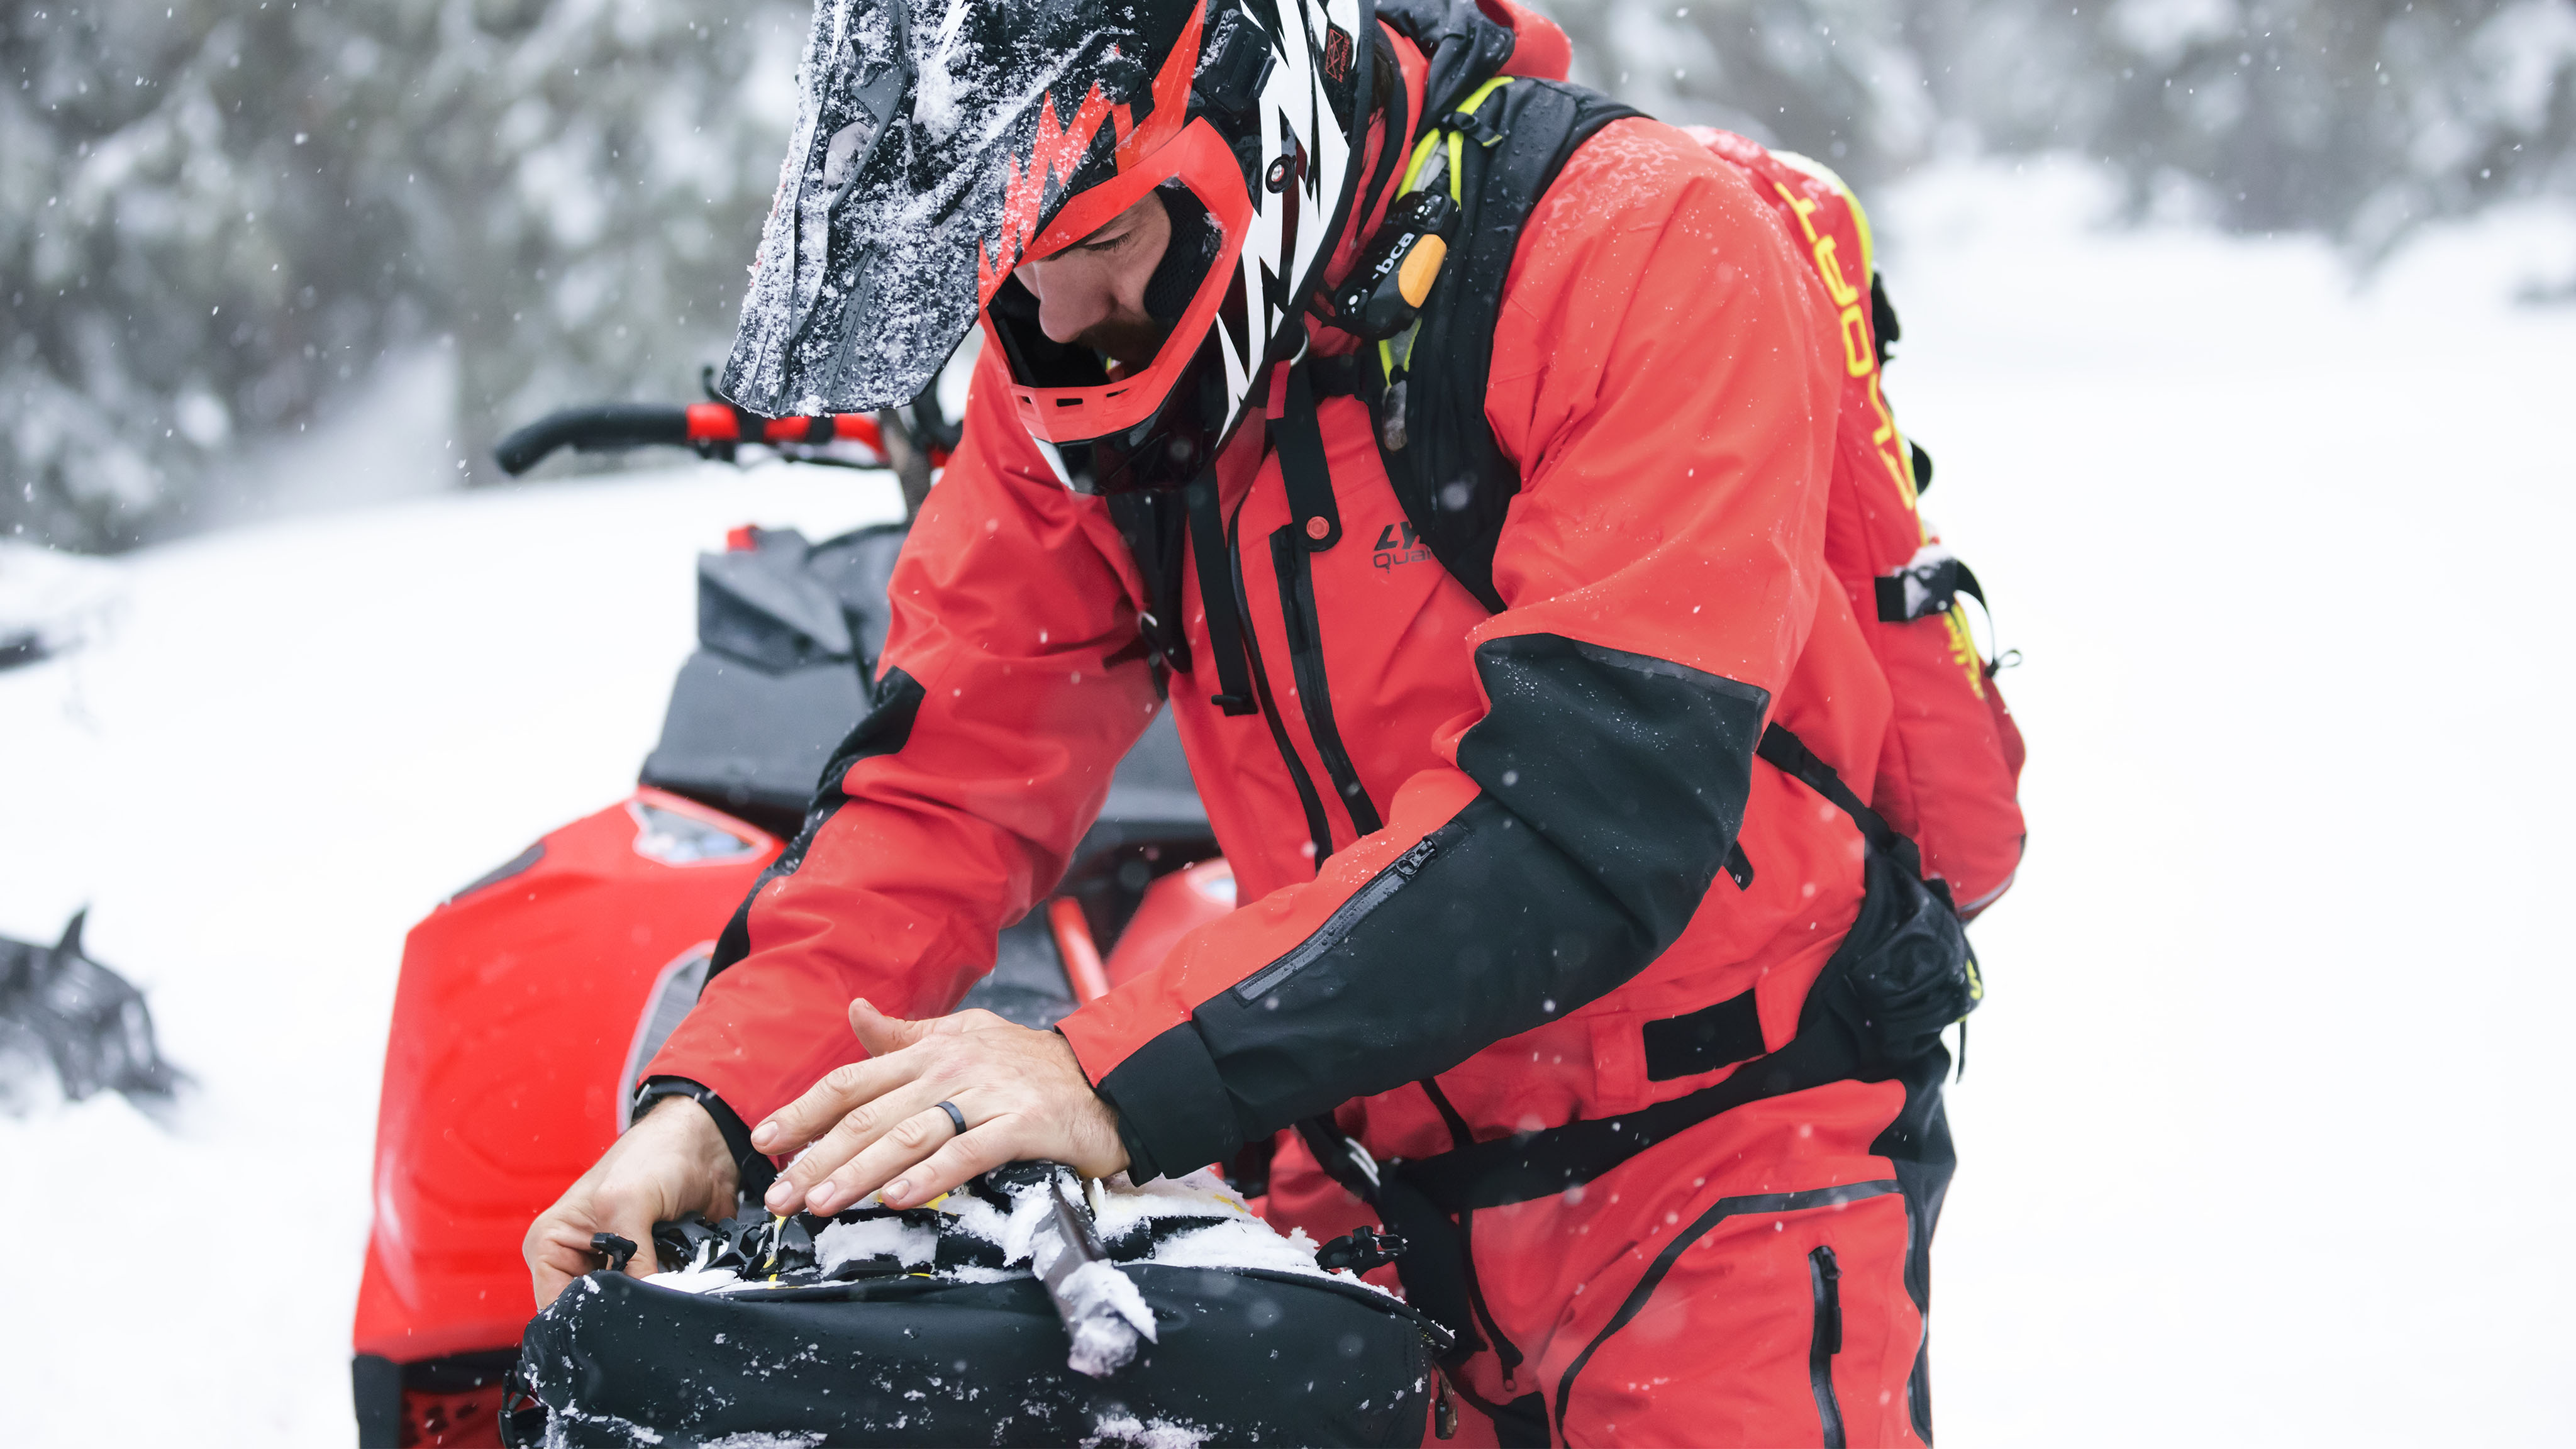 Man wearing Lynx Apparel and preparing a snowmobile ride